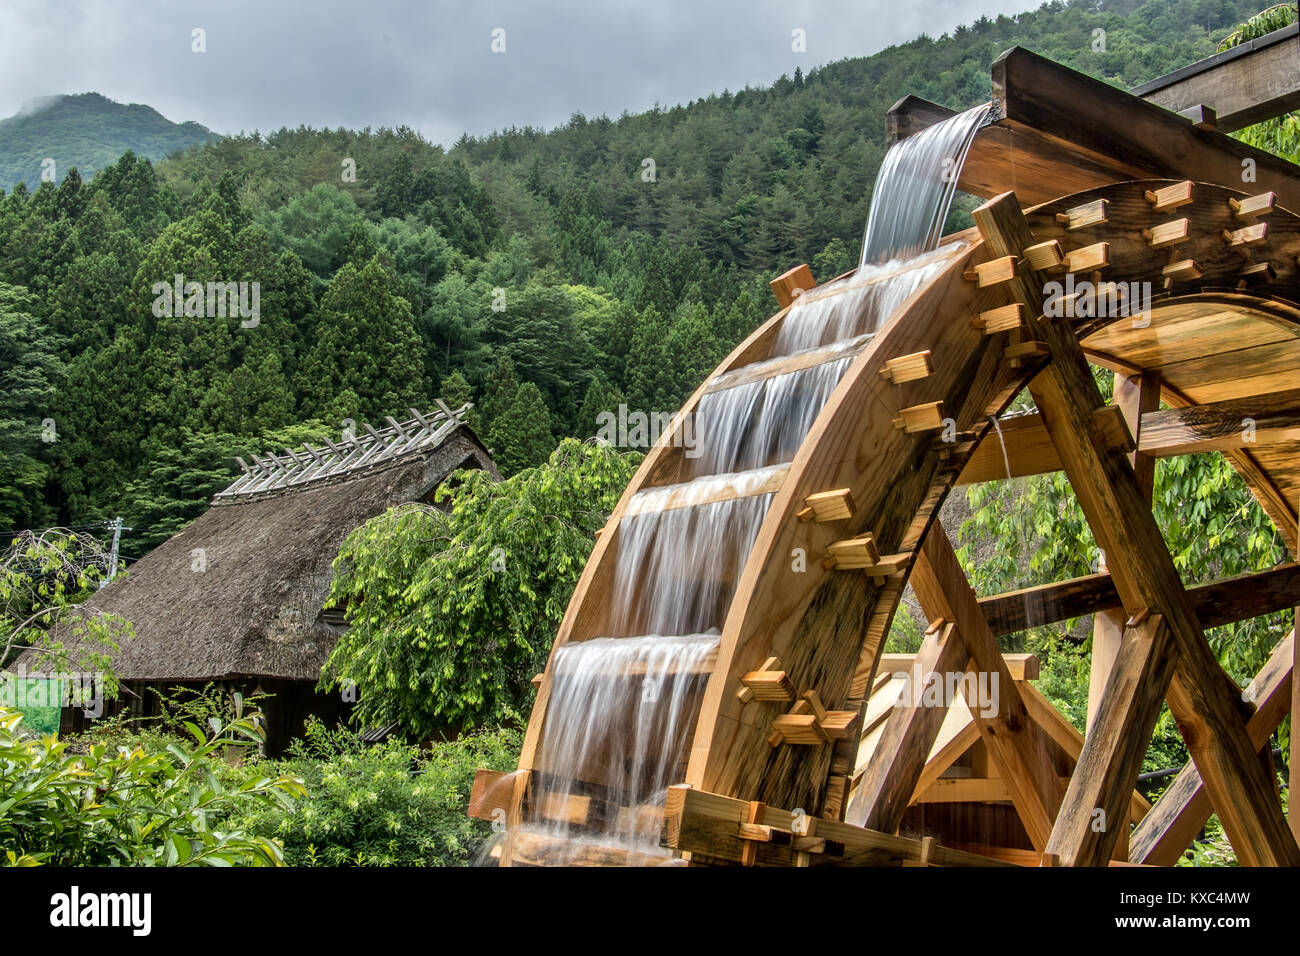 The mill wheel rotates under a stream of water, open air museum at village with traditional thatched roofed houses - Stock Image